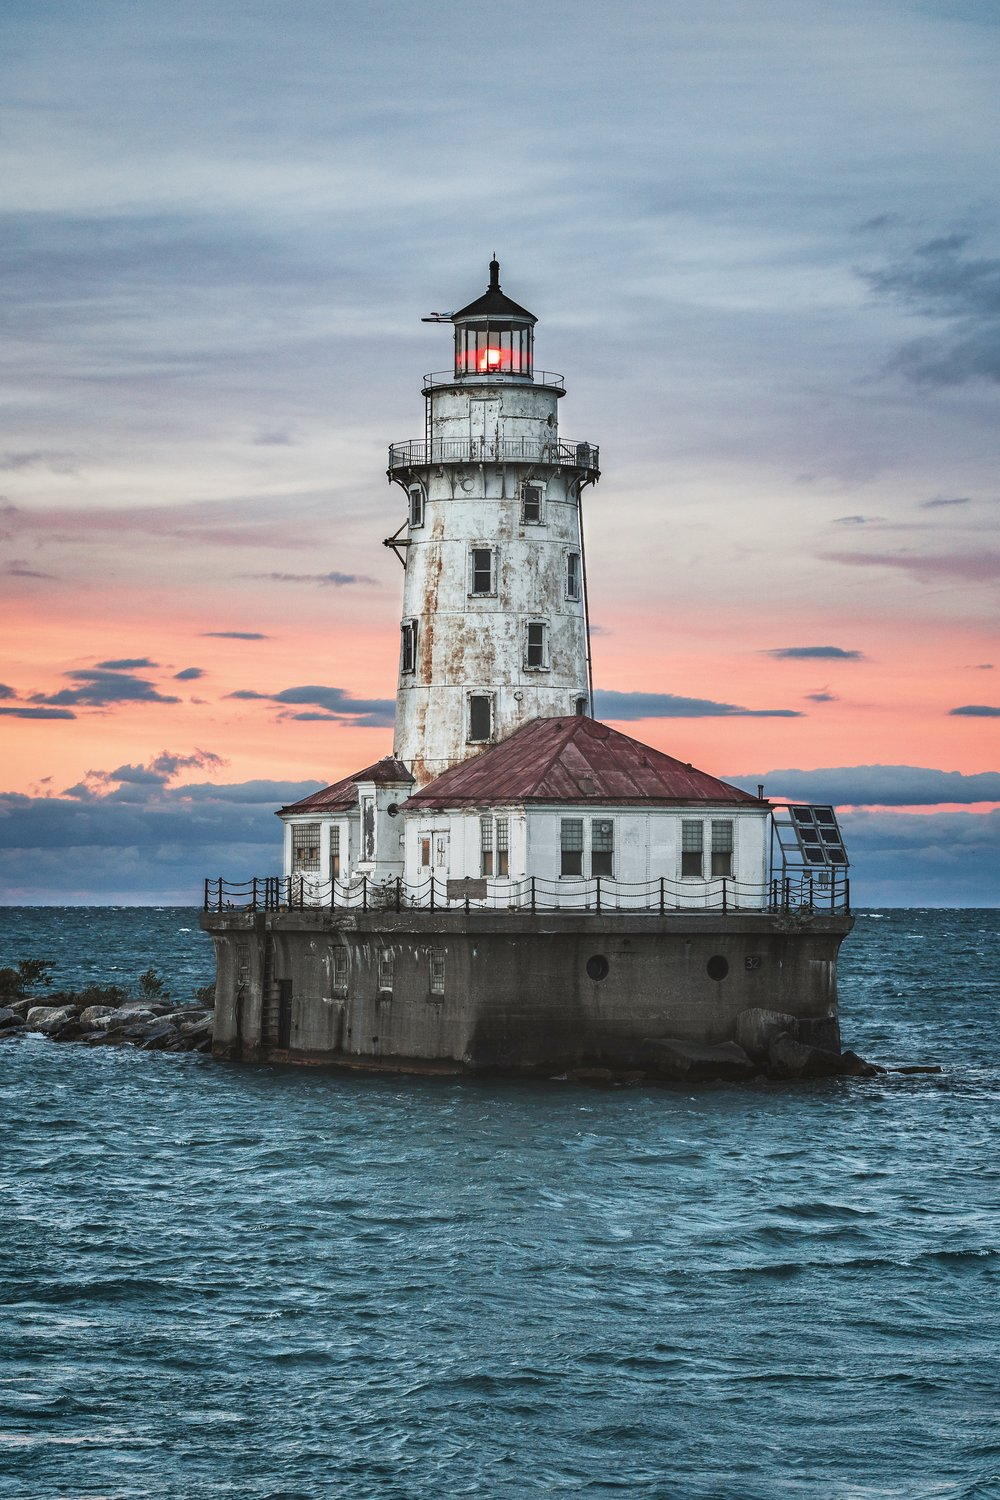 Shoreline Cruise (Lighthouse).jpg